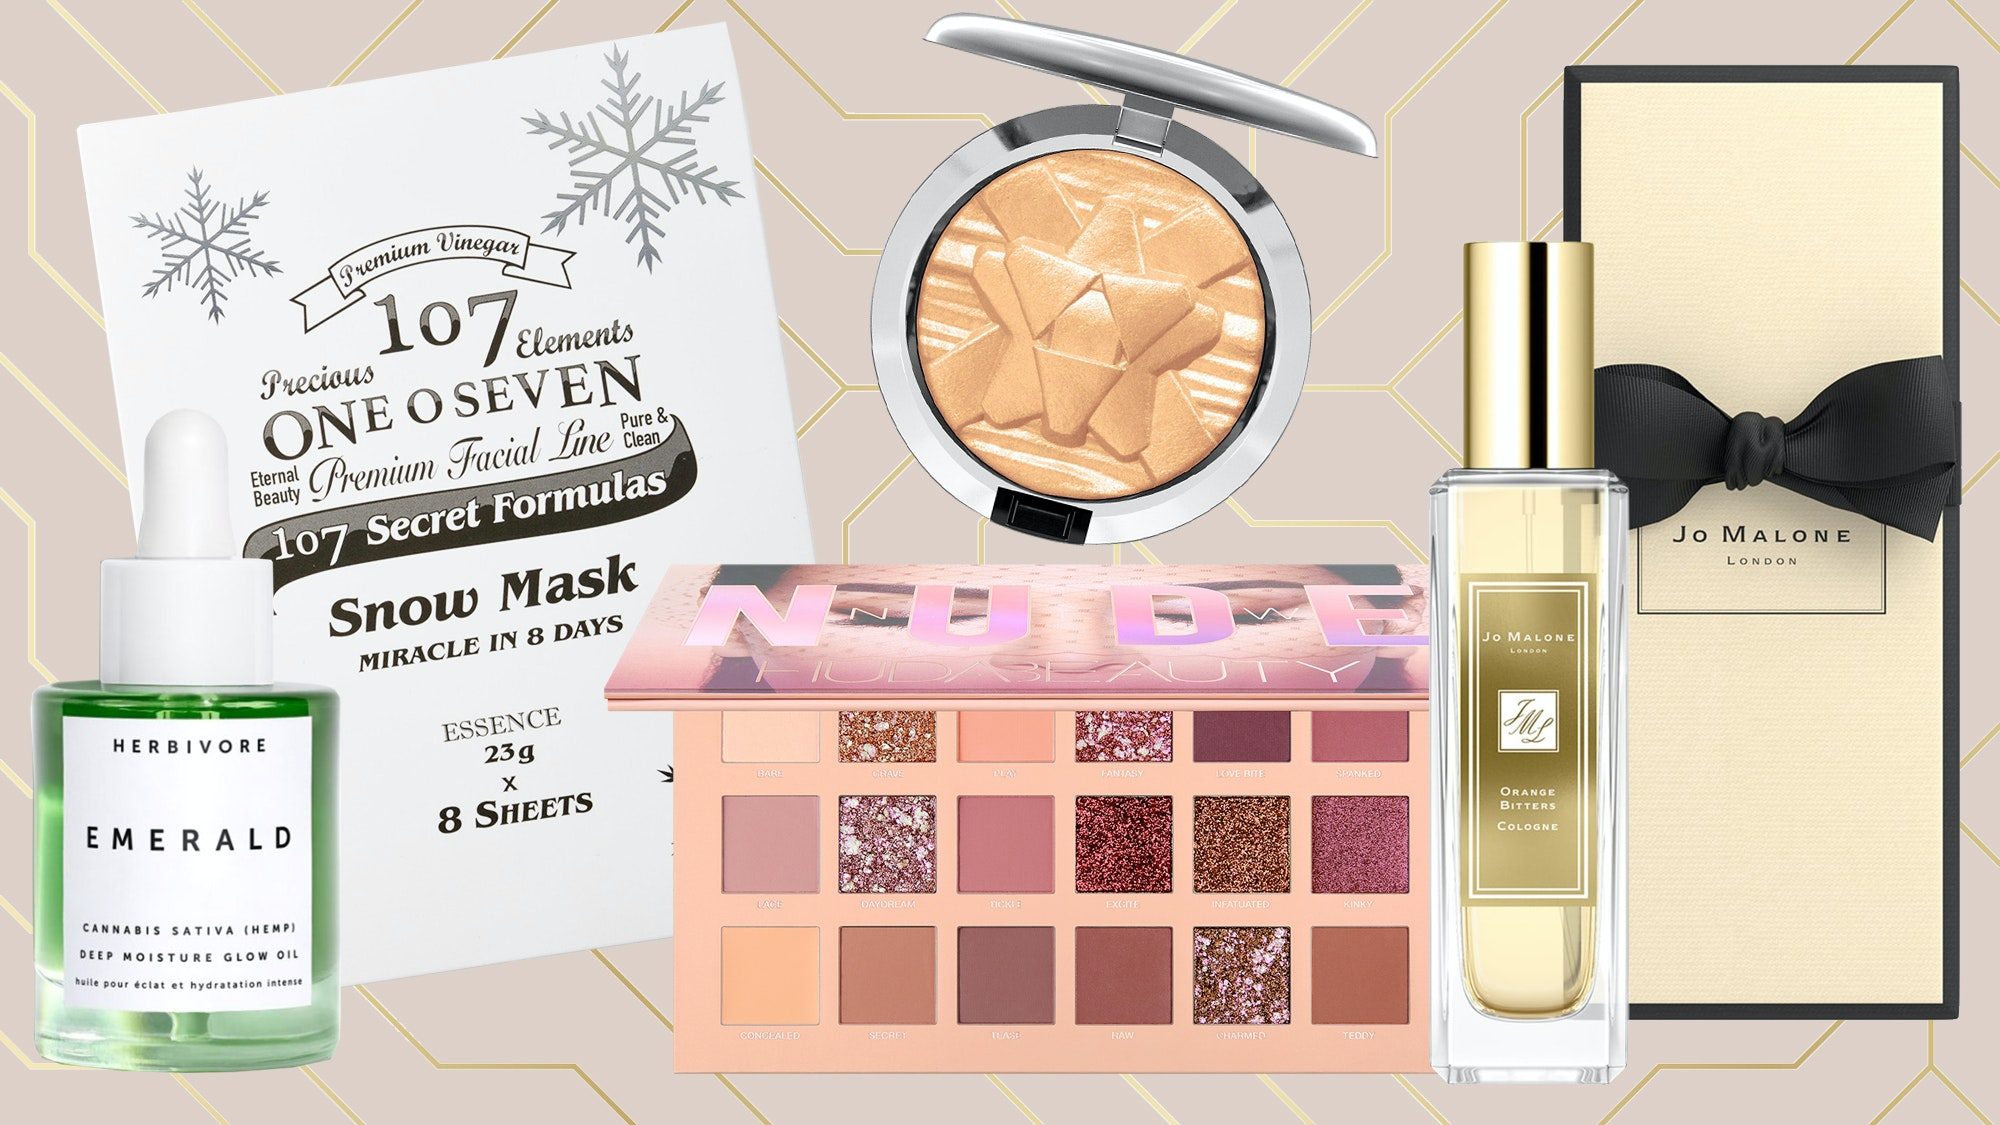 16 New Beauty Launches Our Editors Are Dreaming About This December